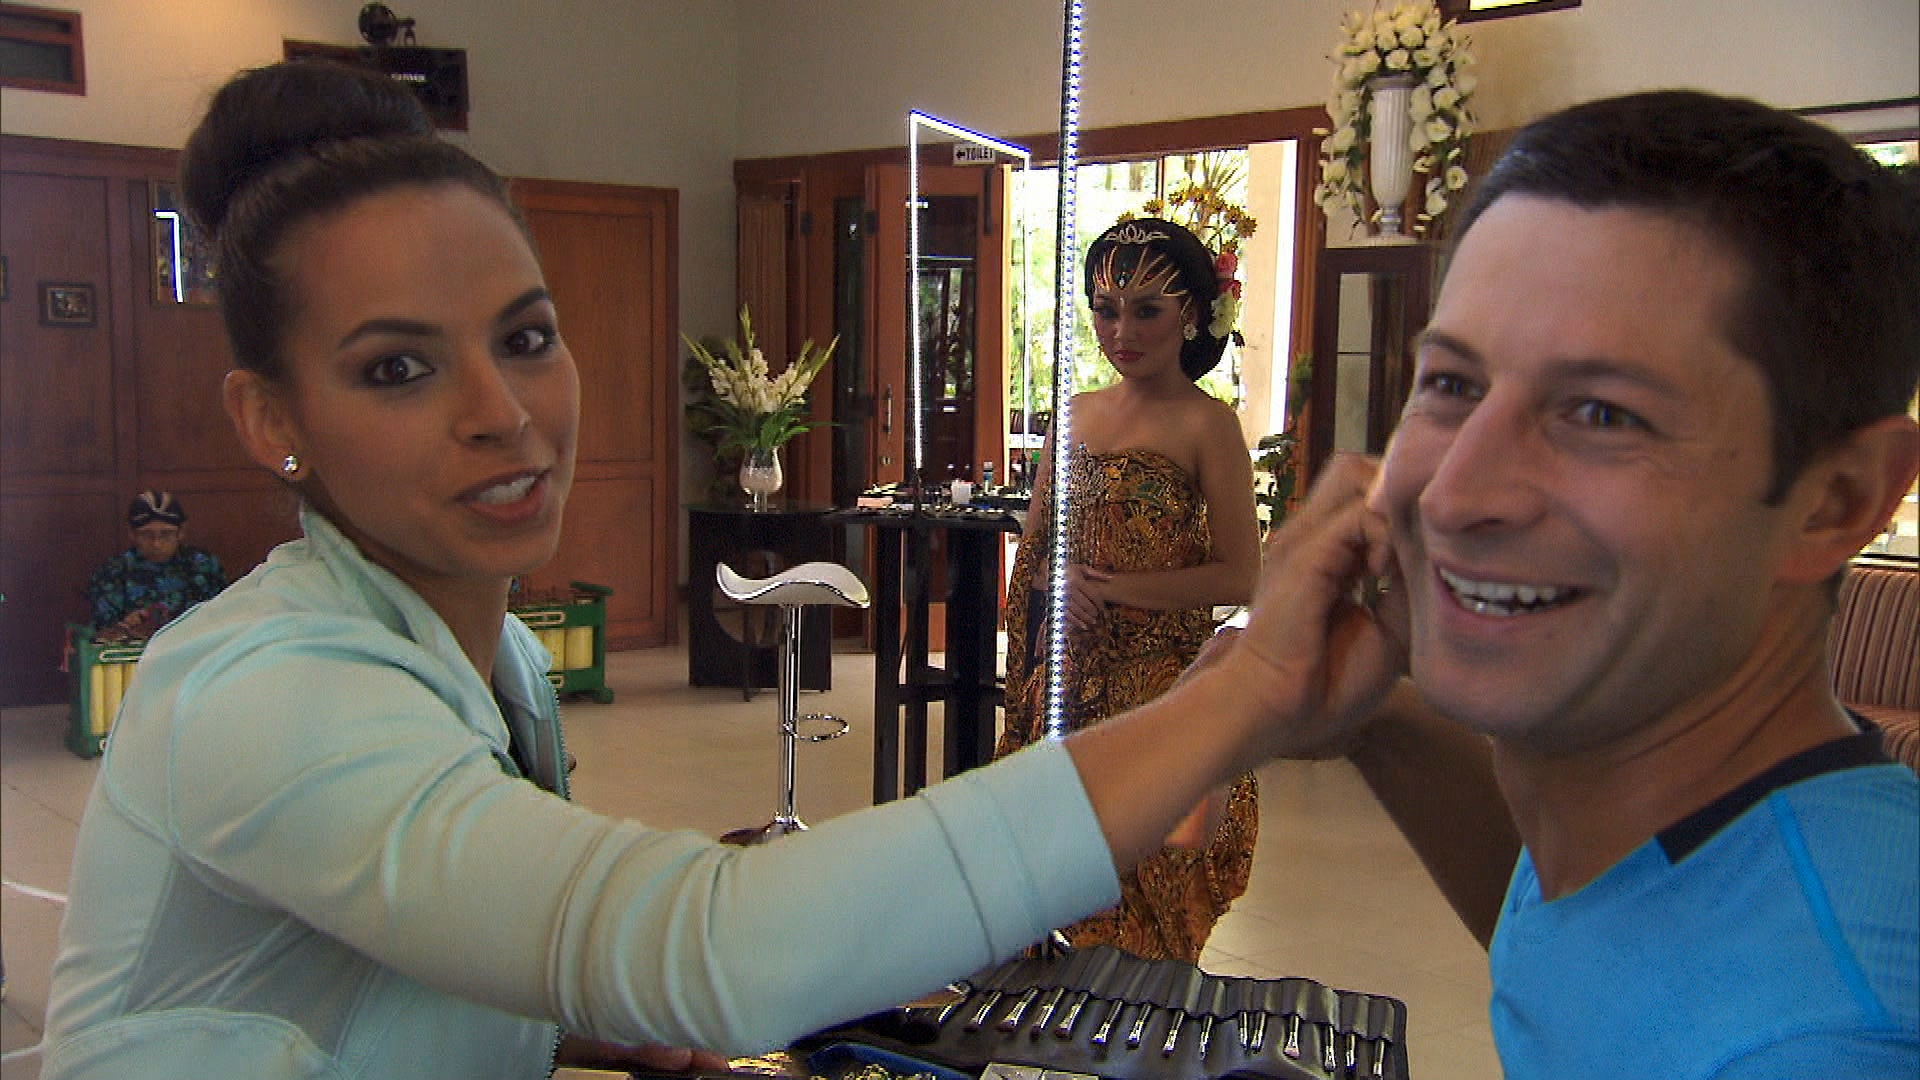 Putting makeup on each other in Season 23 Episode 10